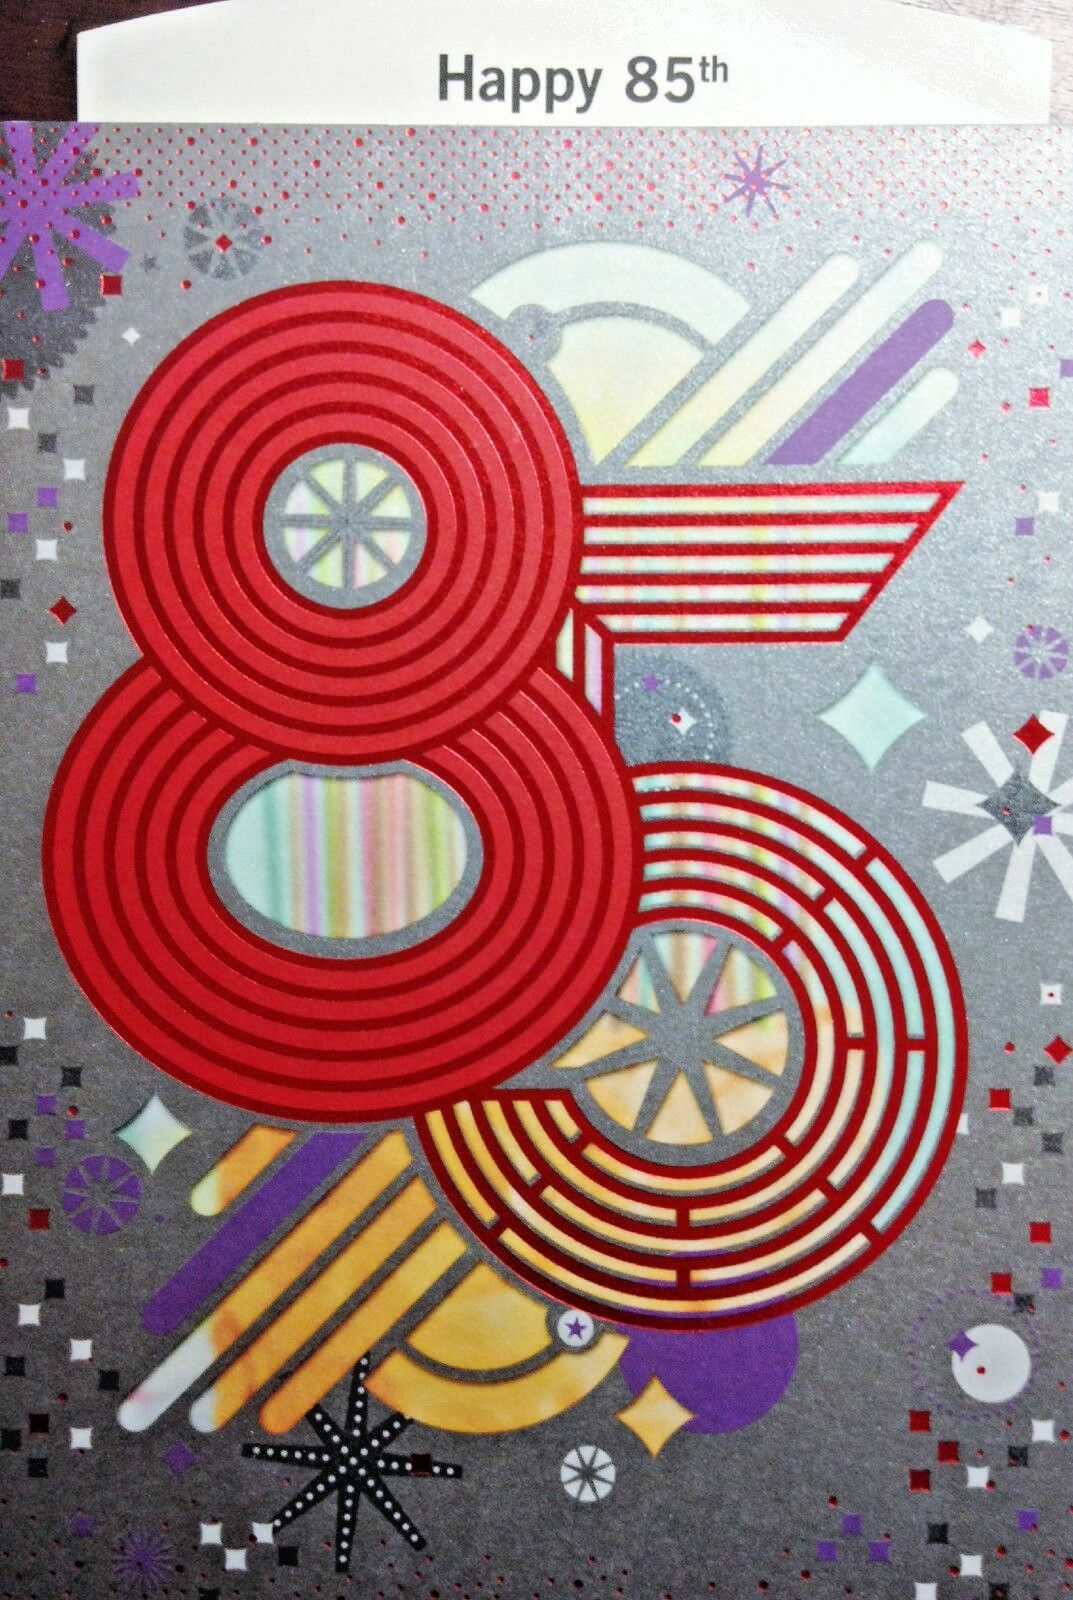 85th Birthday Greeting Cards Happy Birthday Age 85 Choice Of 6 By